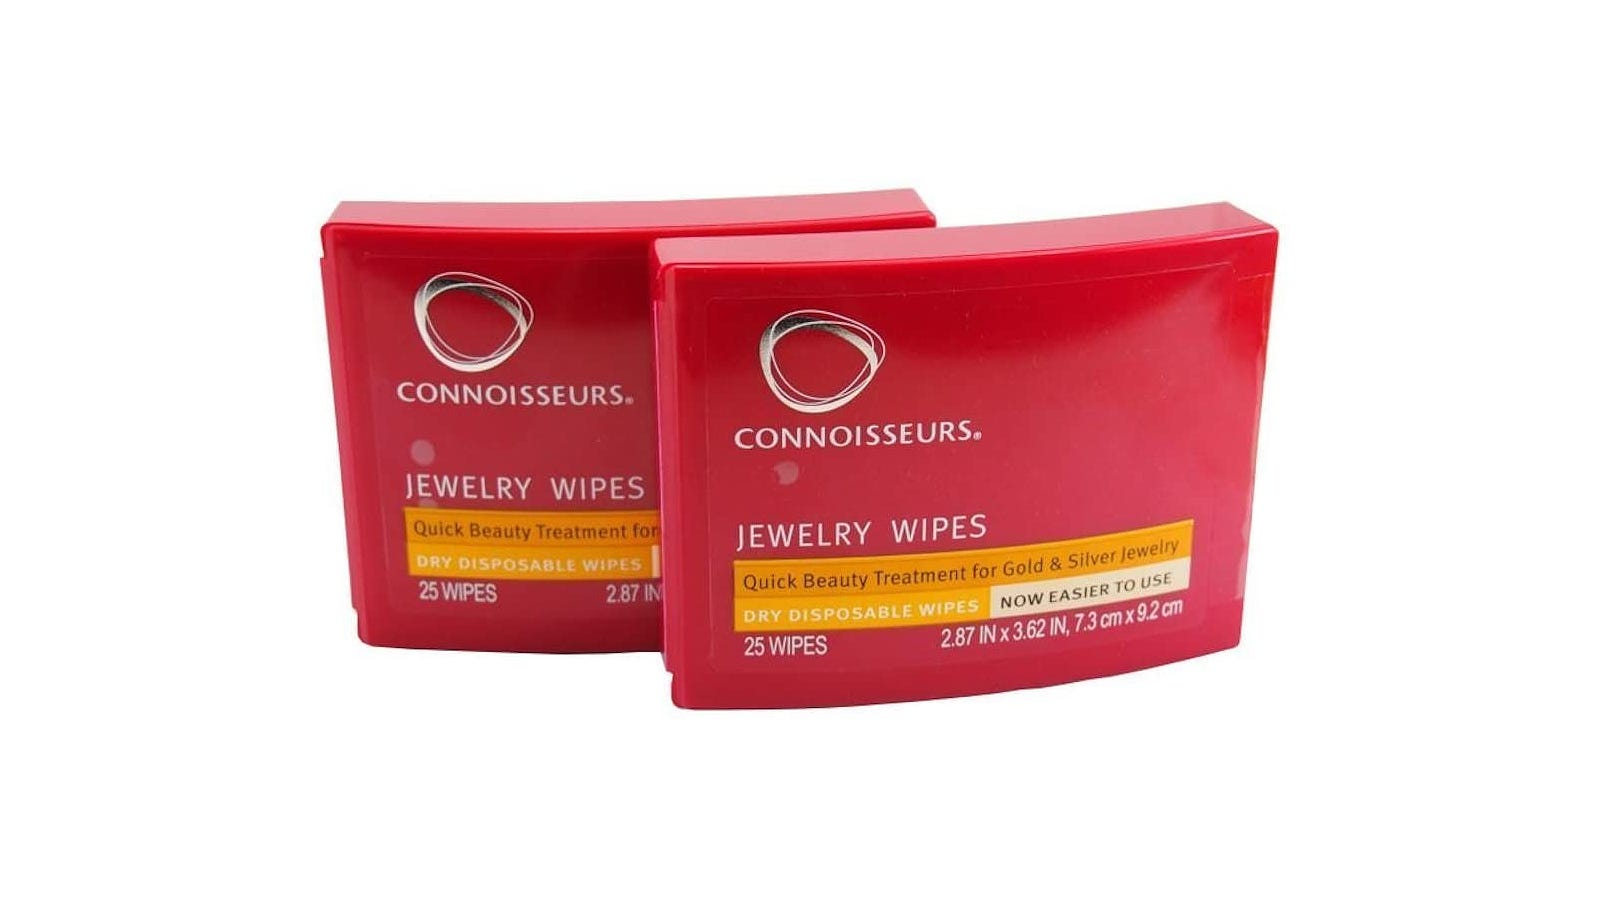 Two red packs of jewelry cleaning wipes.